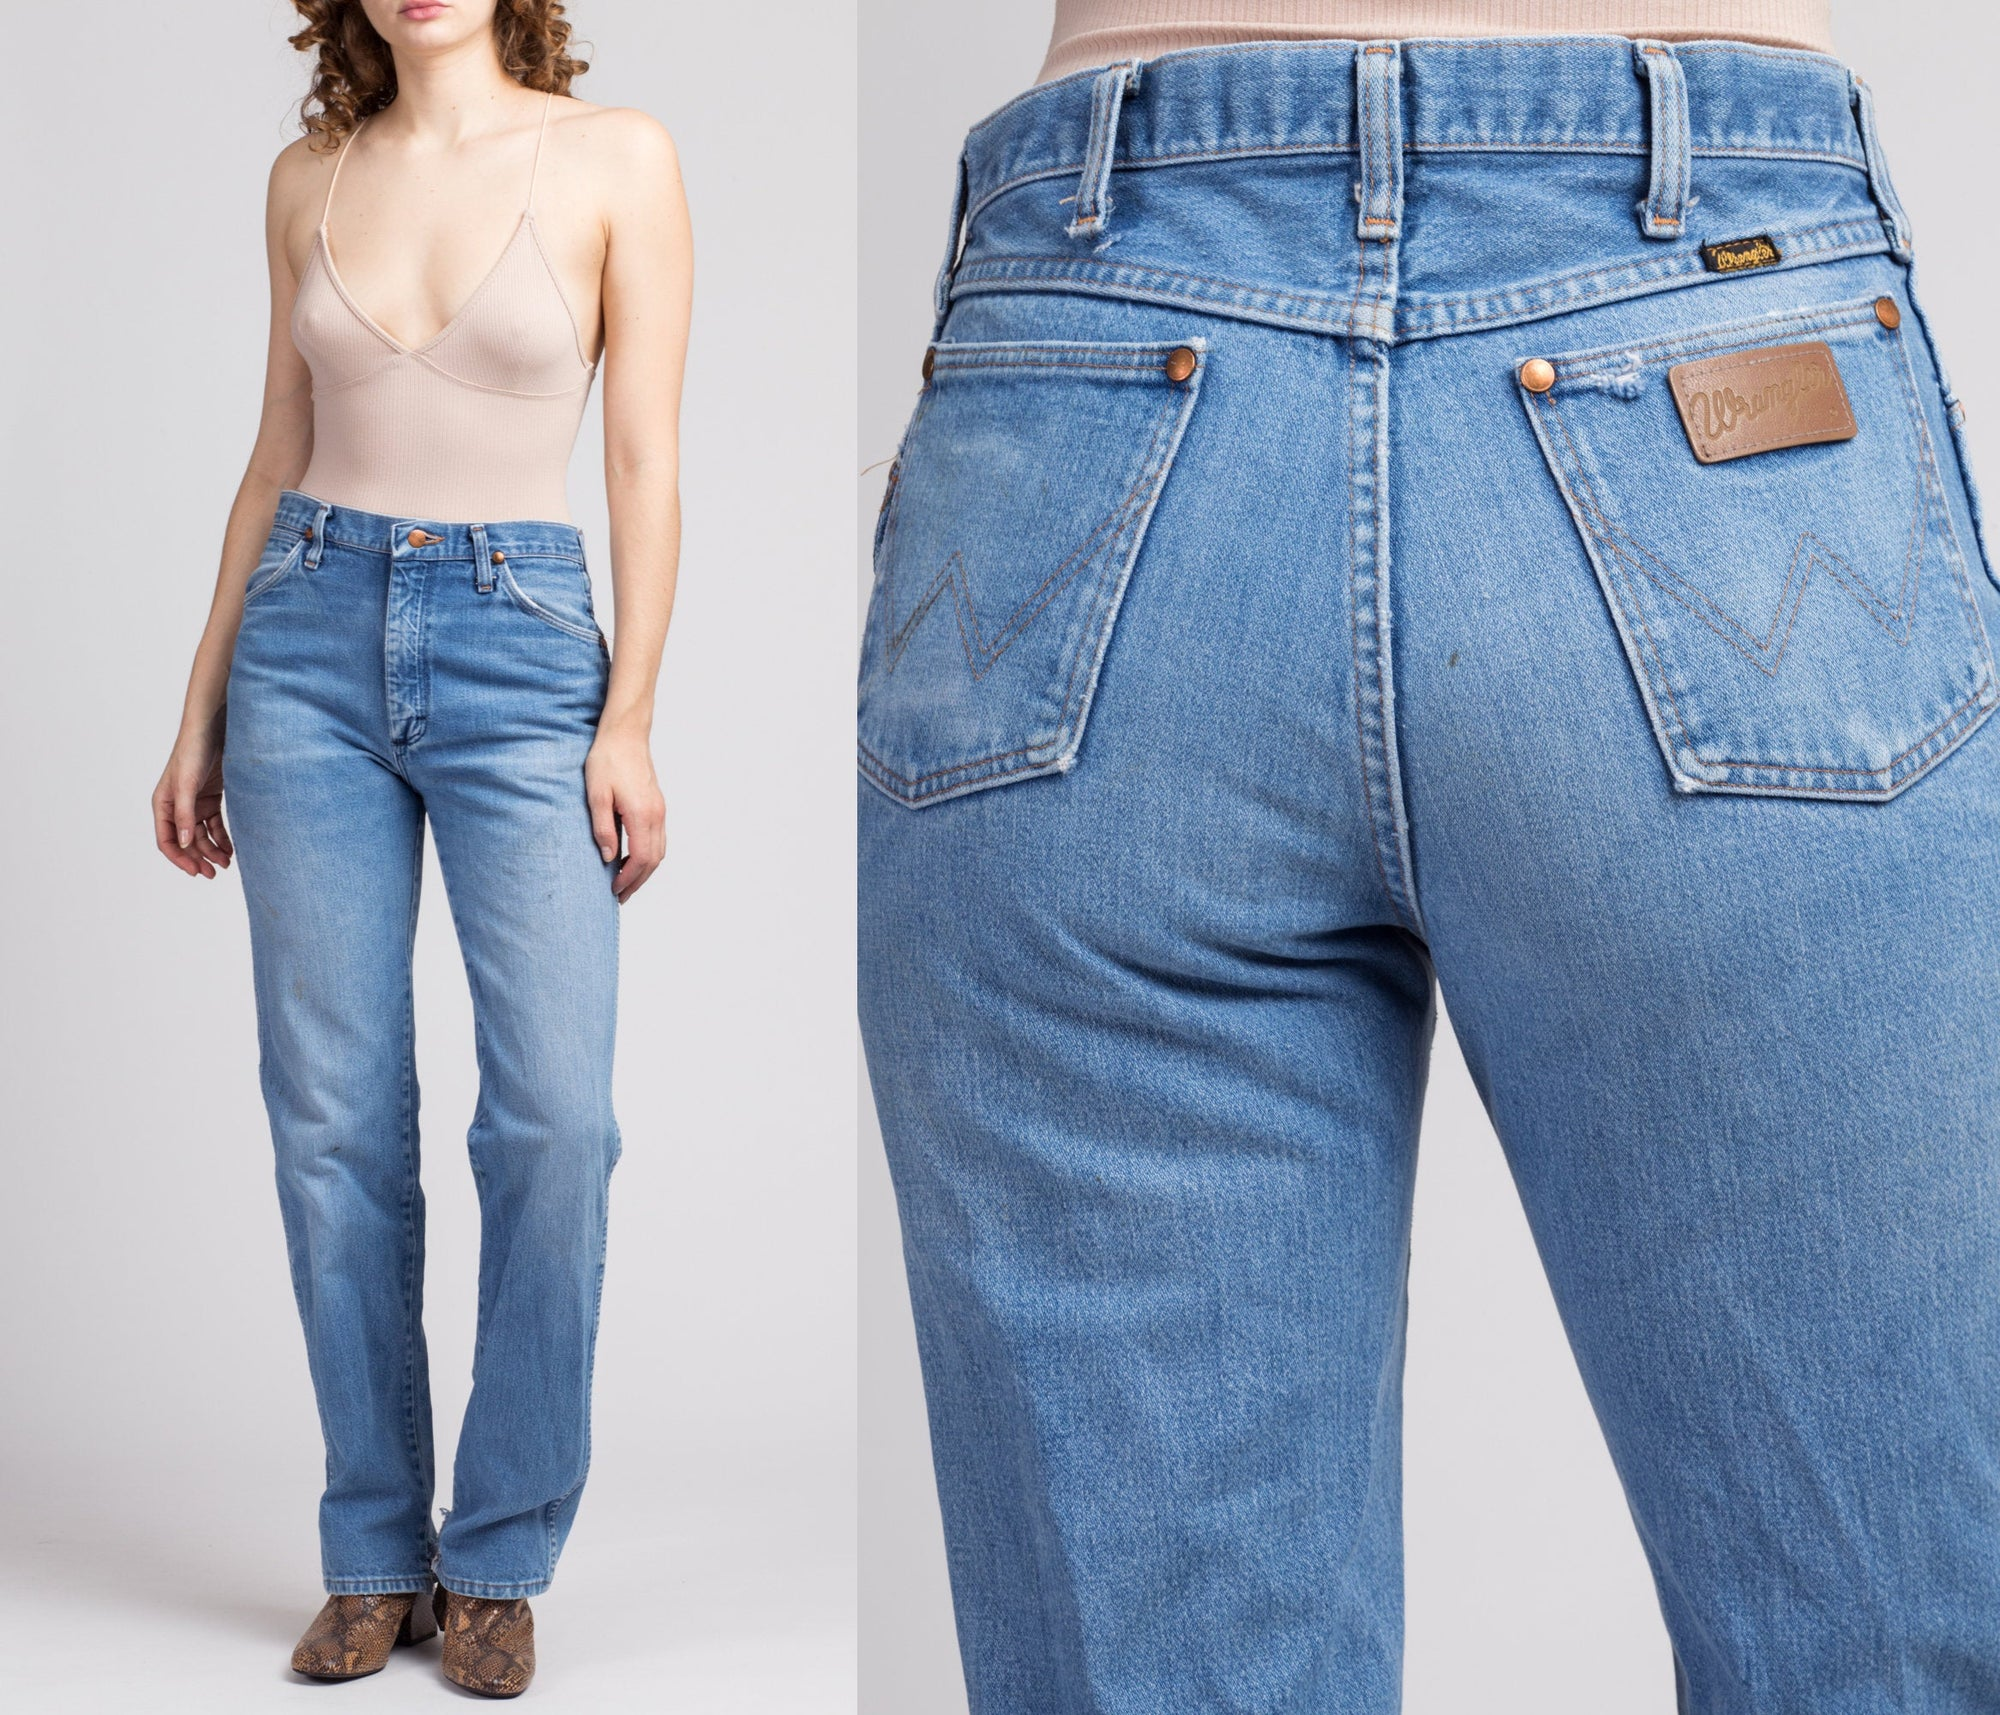 Vintage Wrangler High Waist Jeans - Medium